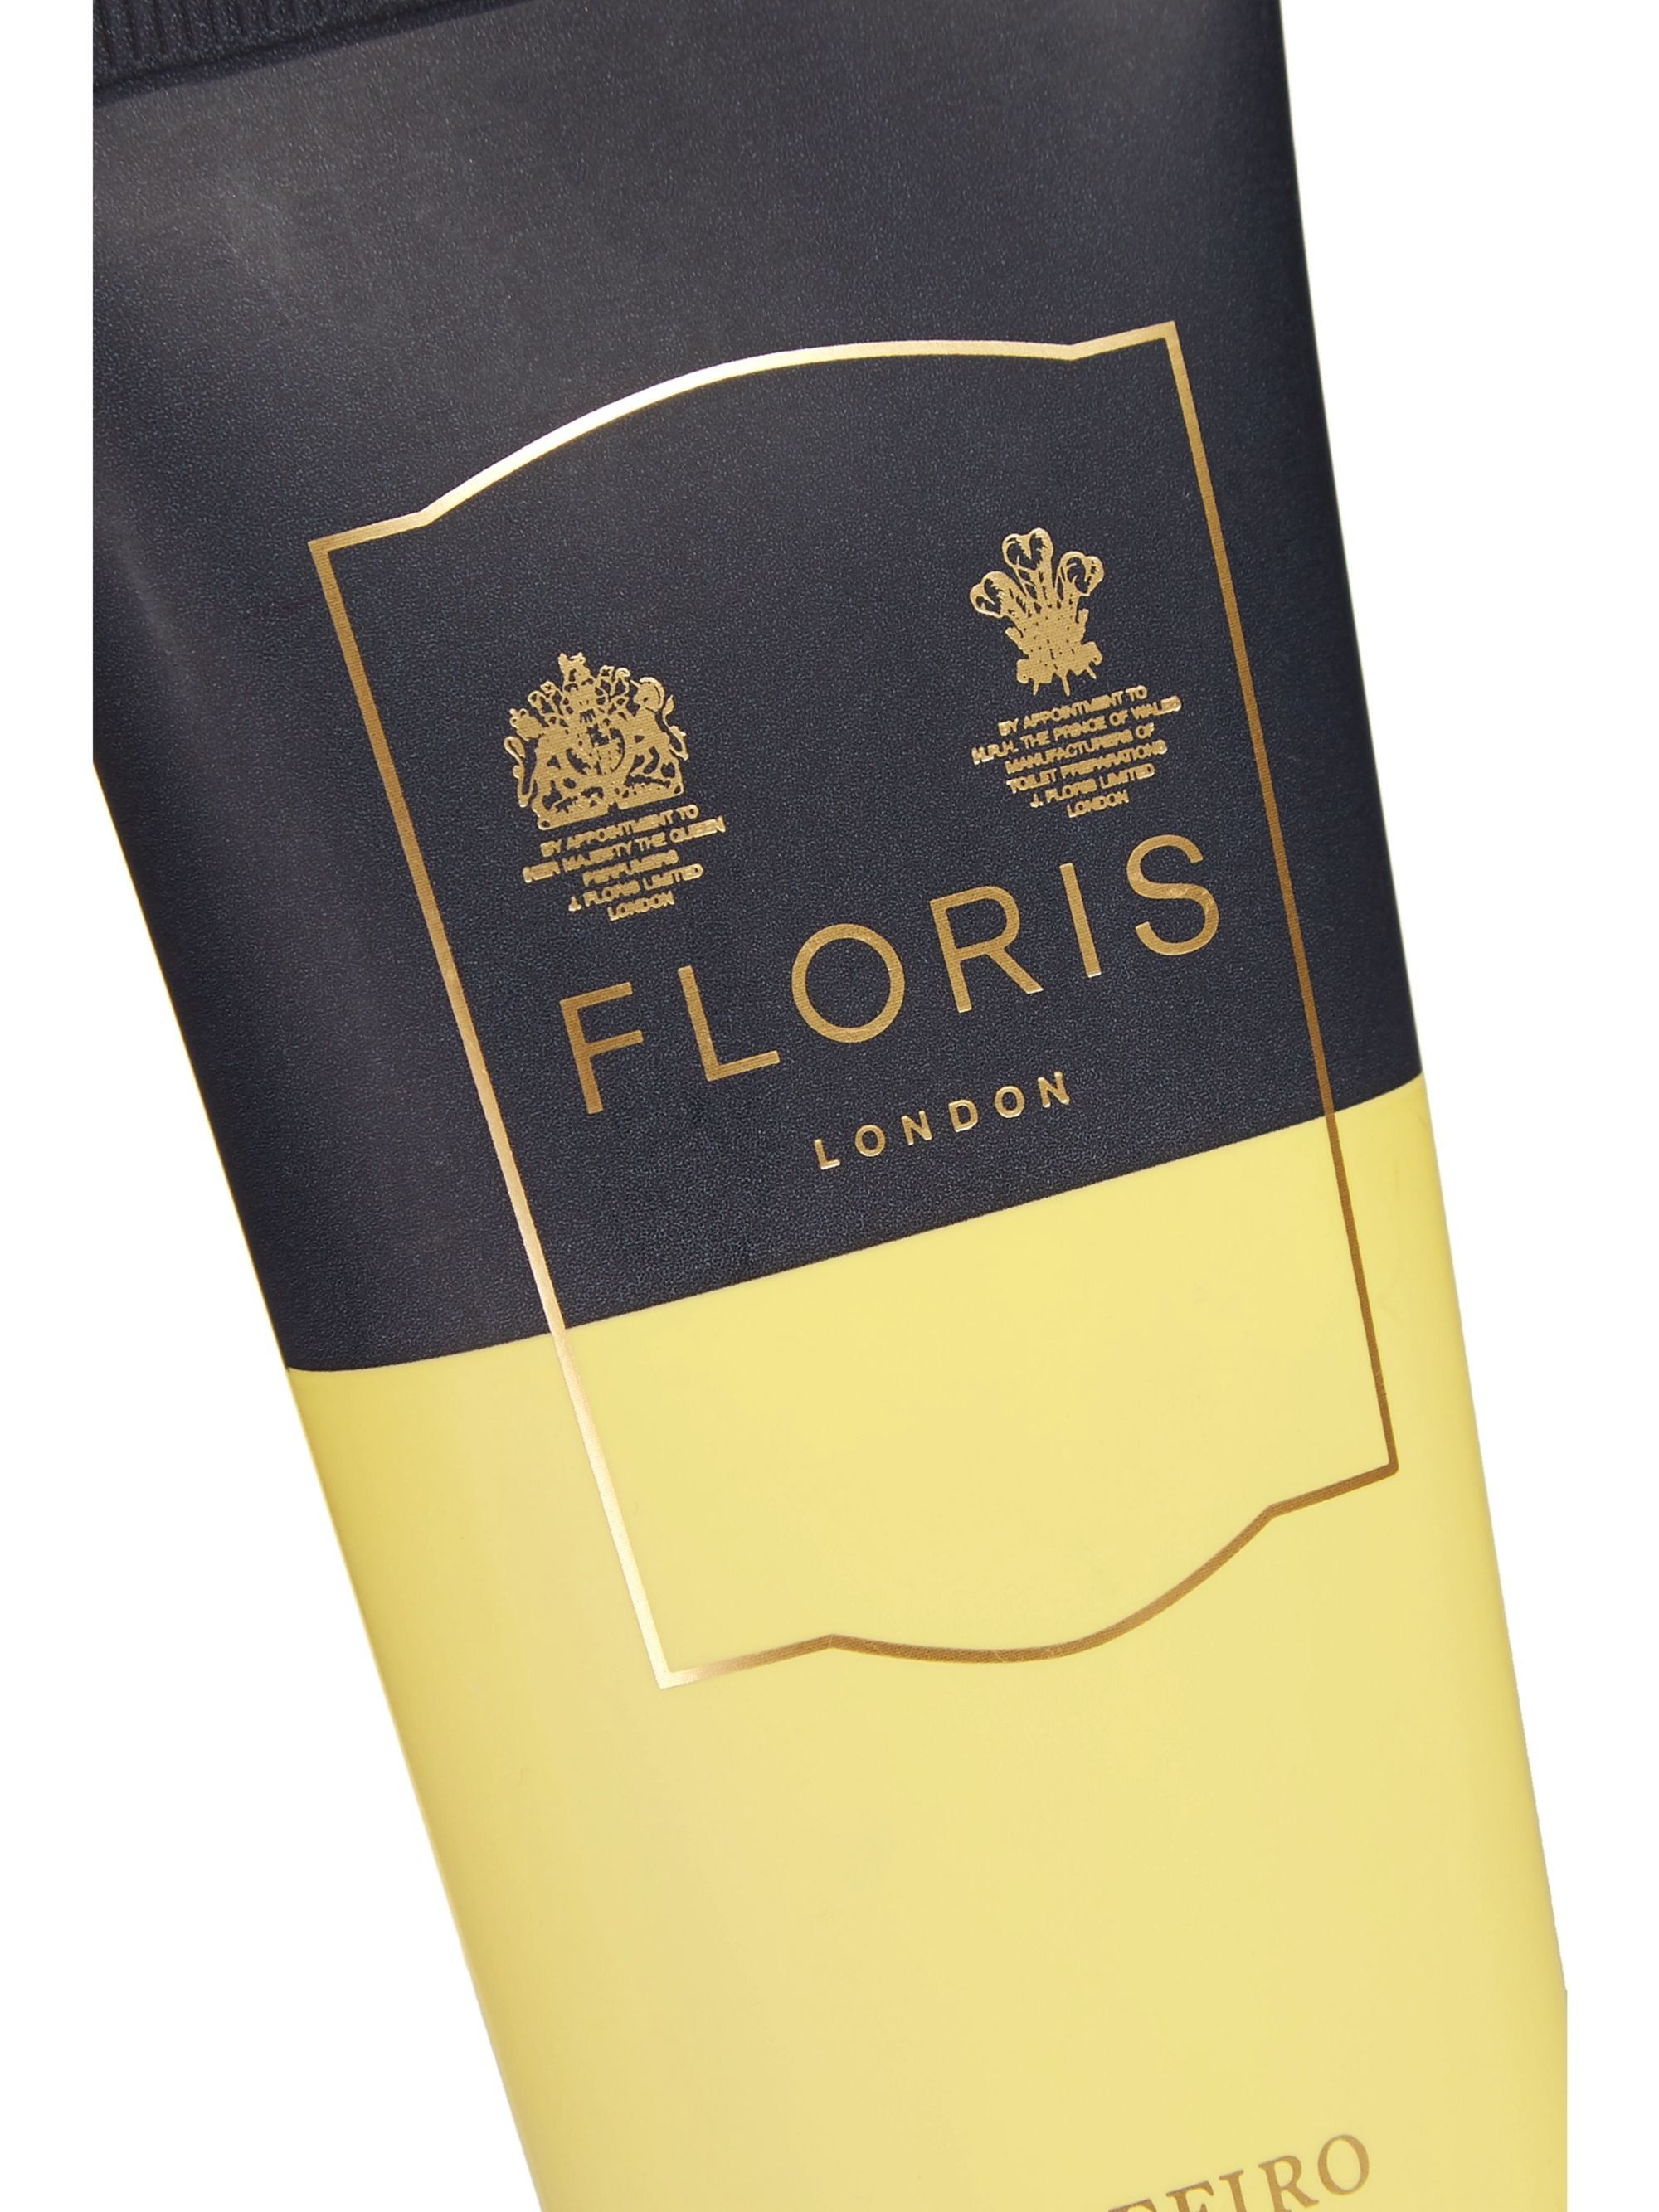 Floris London Cefiro Hand Treatment Cream, 75ml